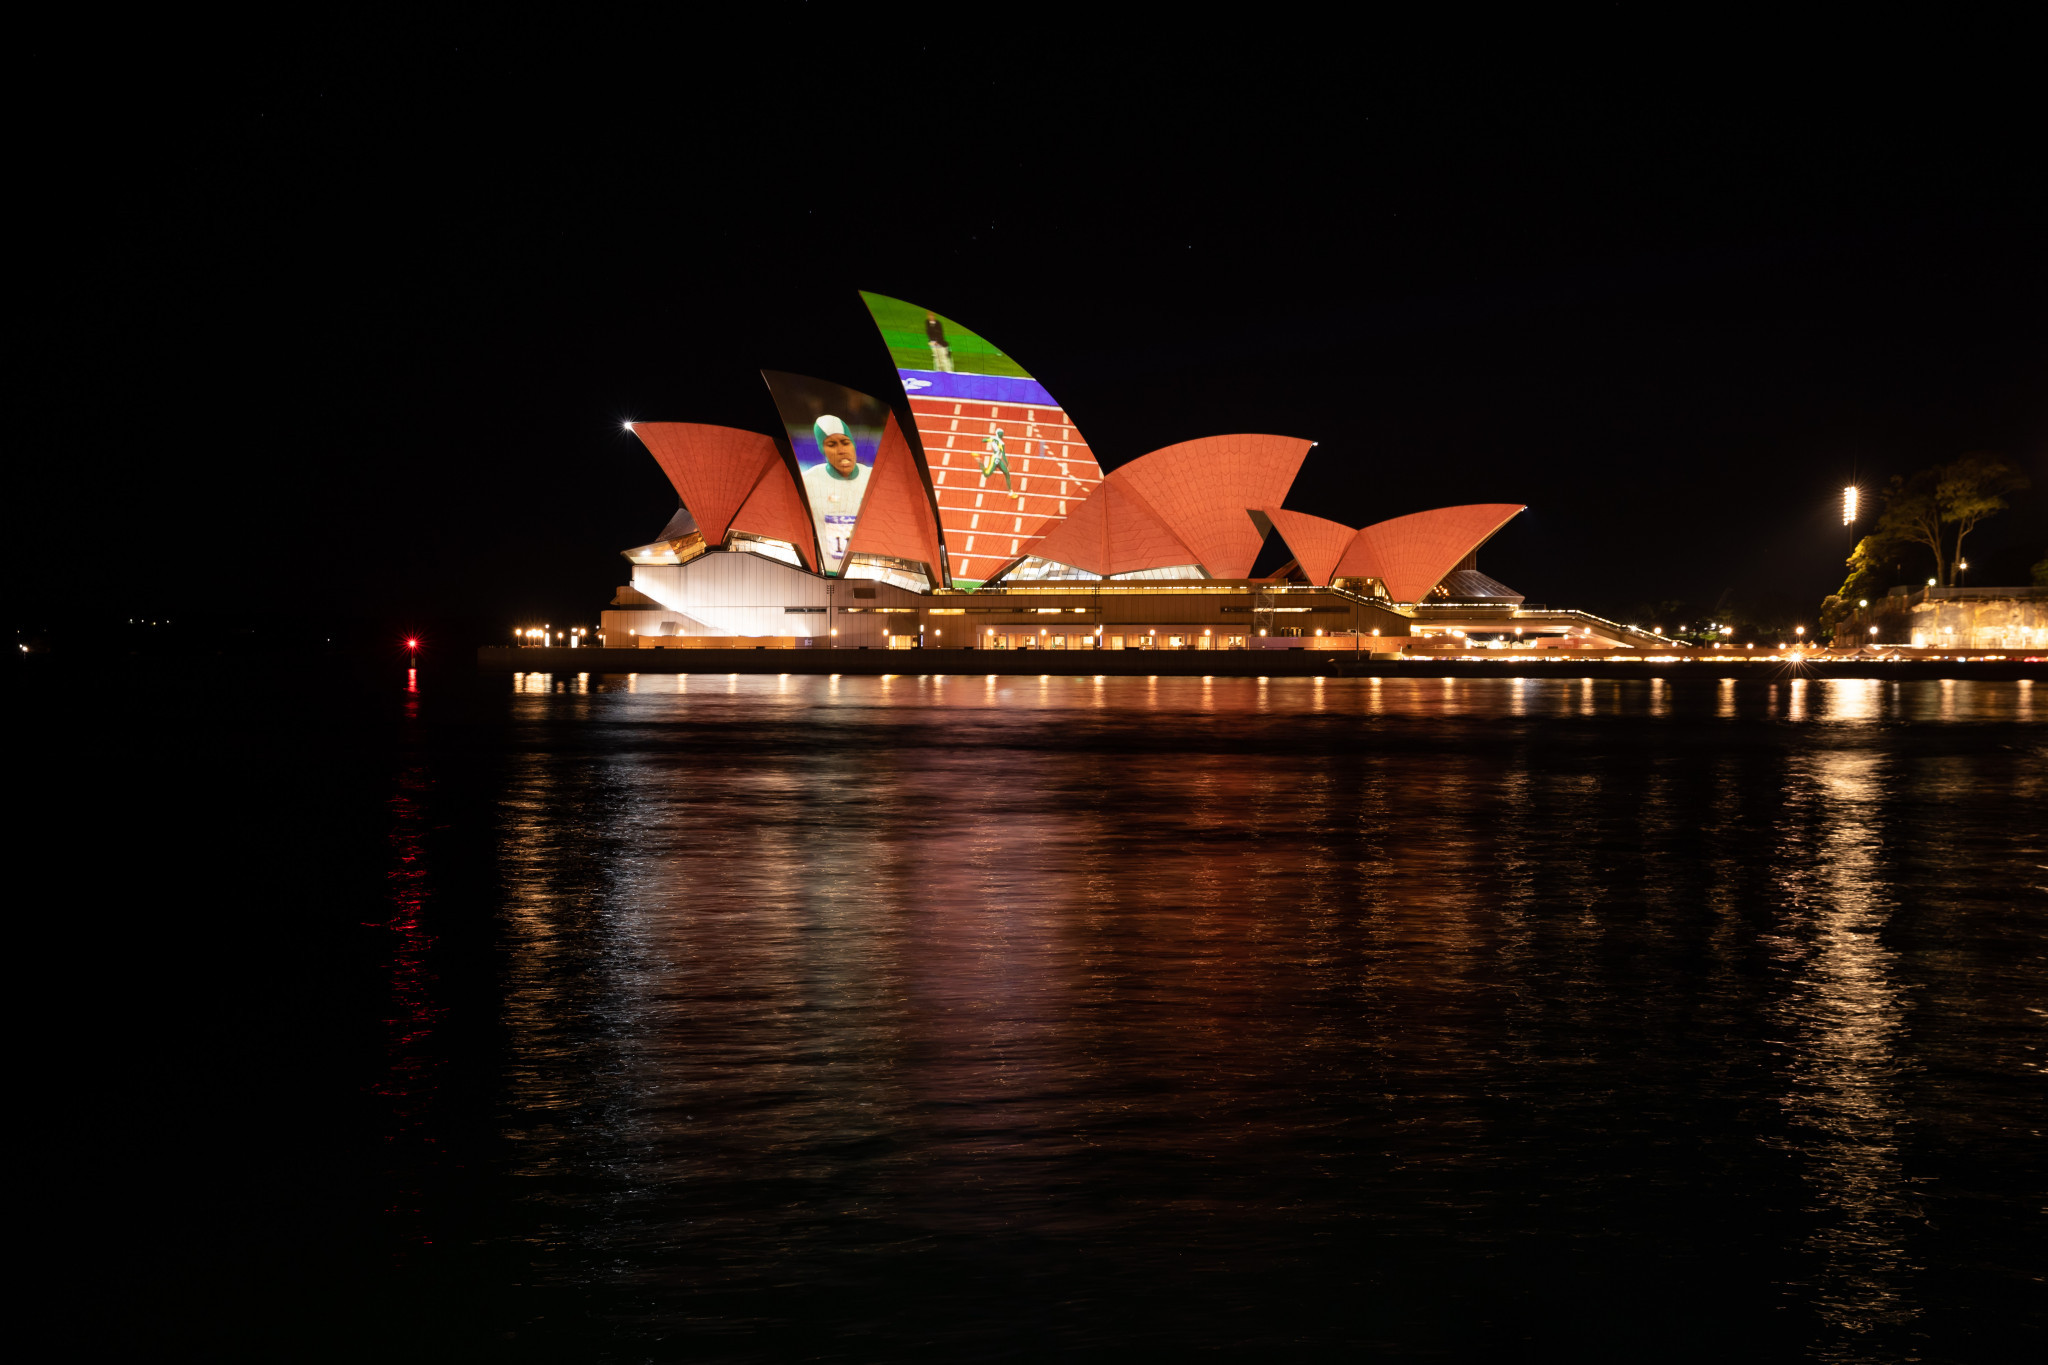 Freeman's golden moment at Sydney 2000 preserved using synthetic DNA technology